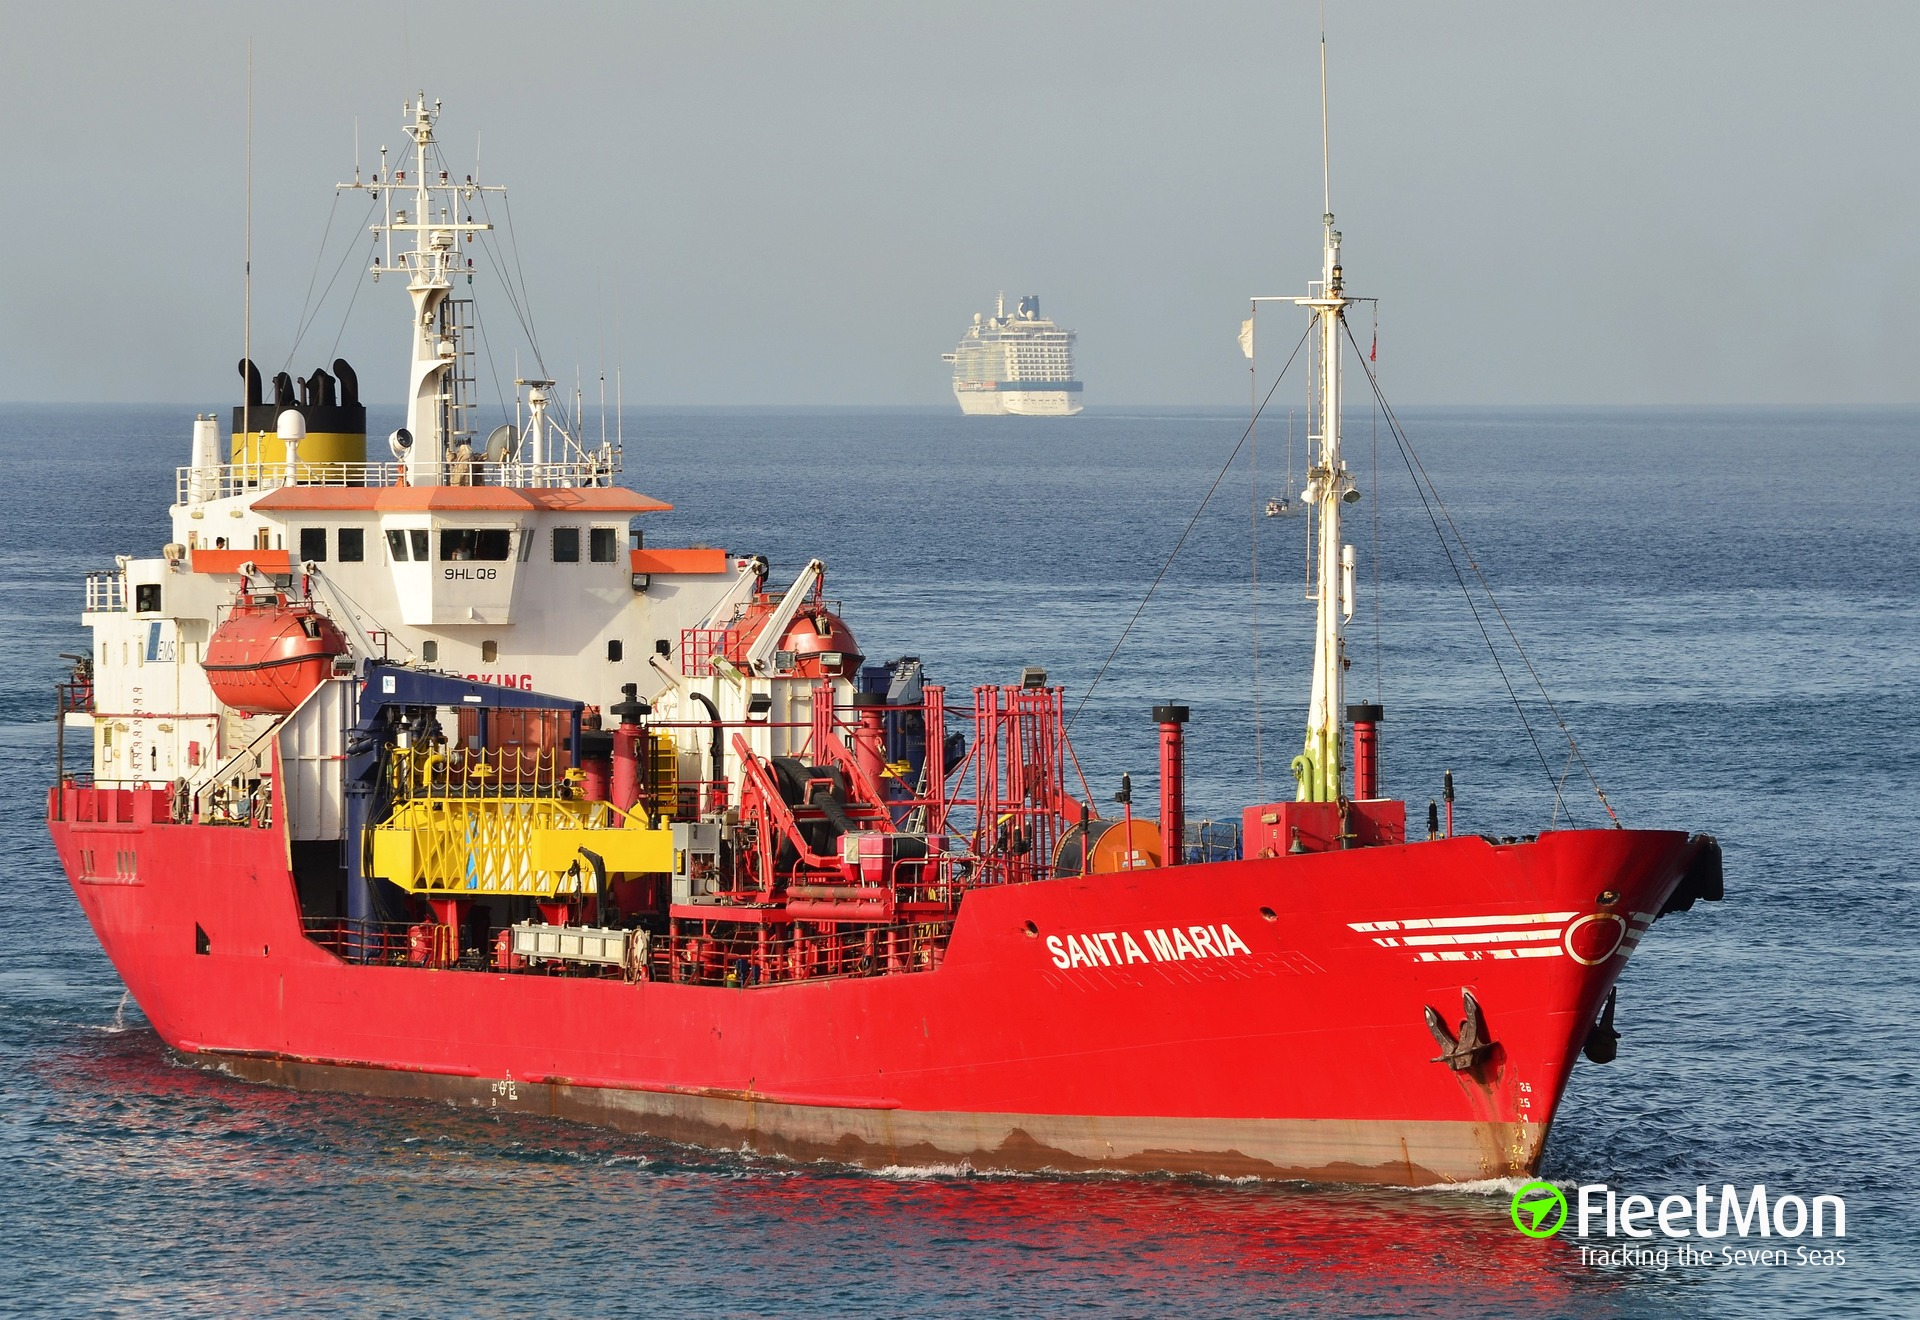 Tanker Santa Maria arrested for fuel contraband from Libya, Malta